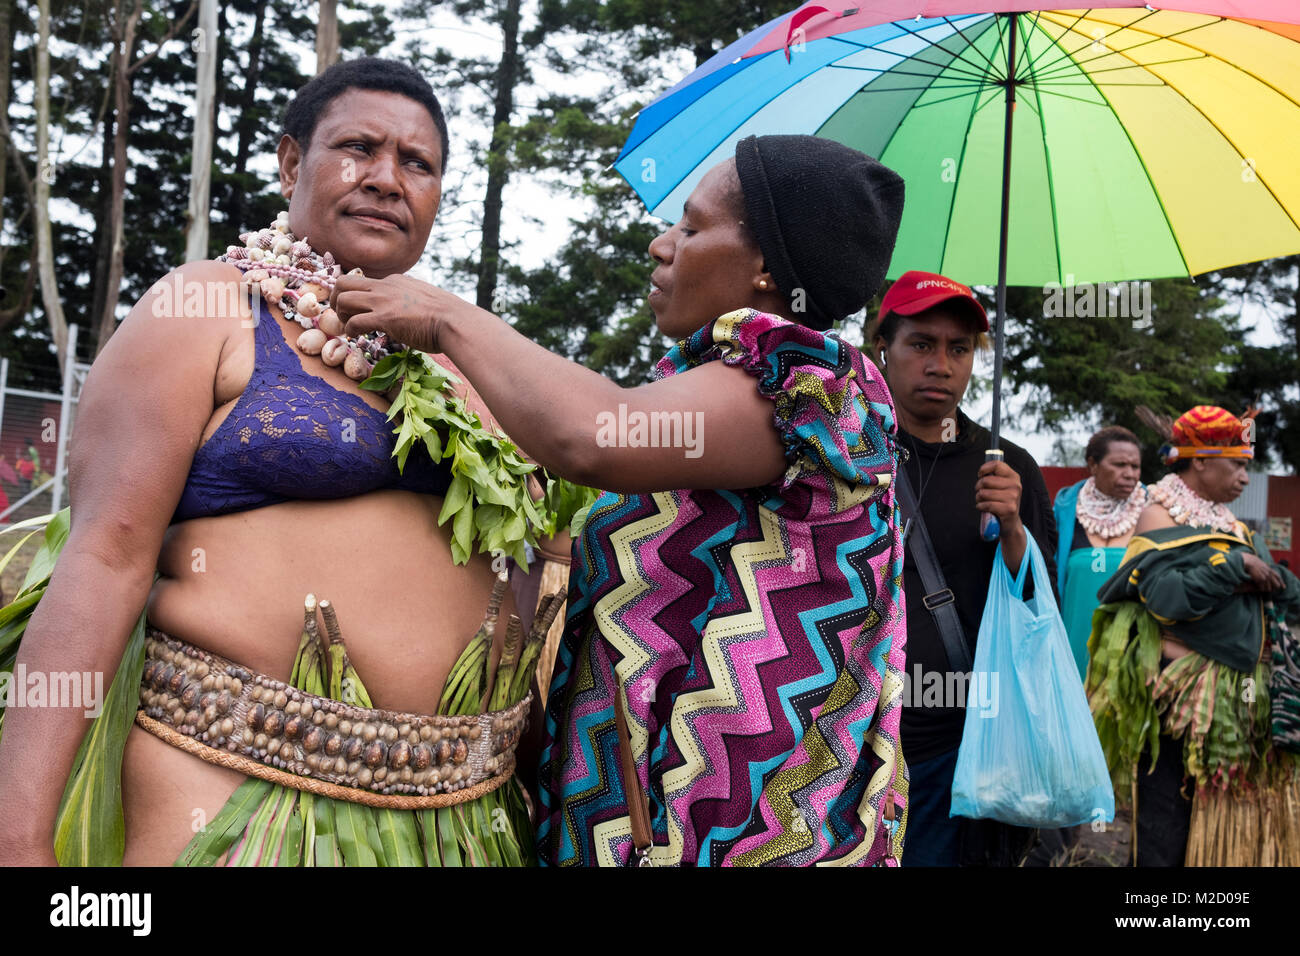 Tribal women dress and prepare for the Mount Hagen Cultural Show in Papua New Guinea - Stock Image